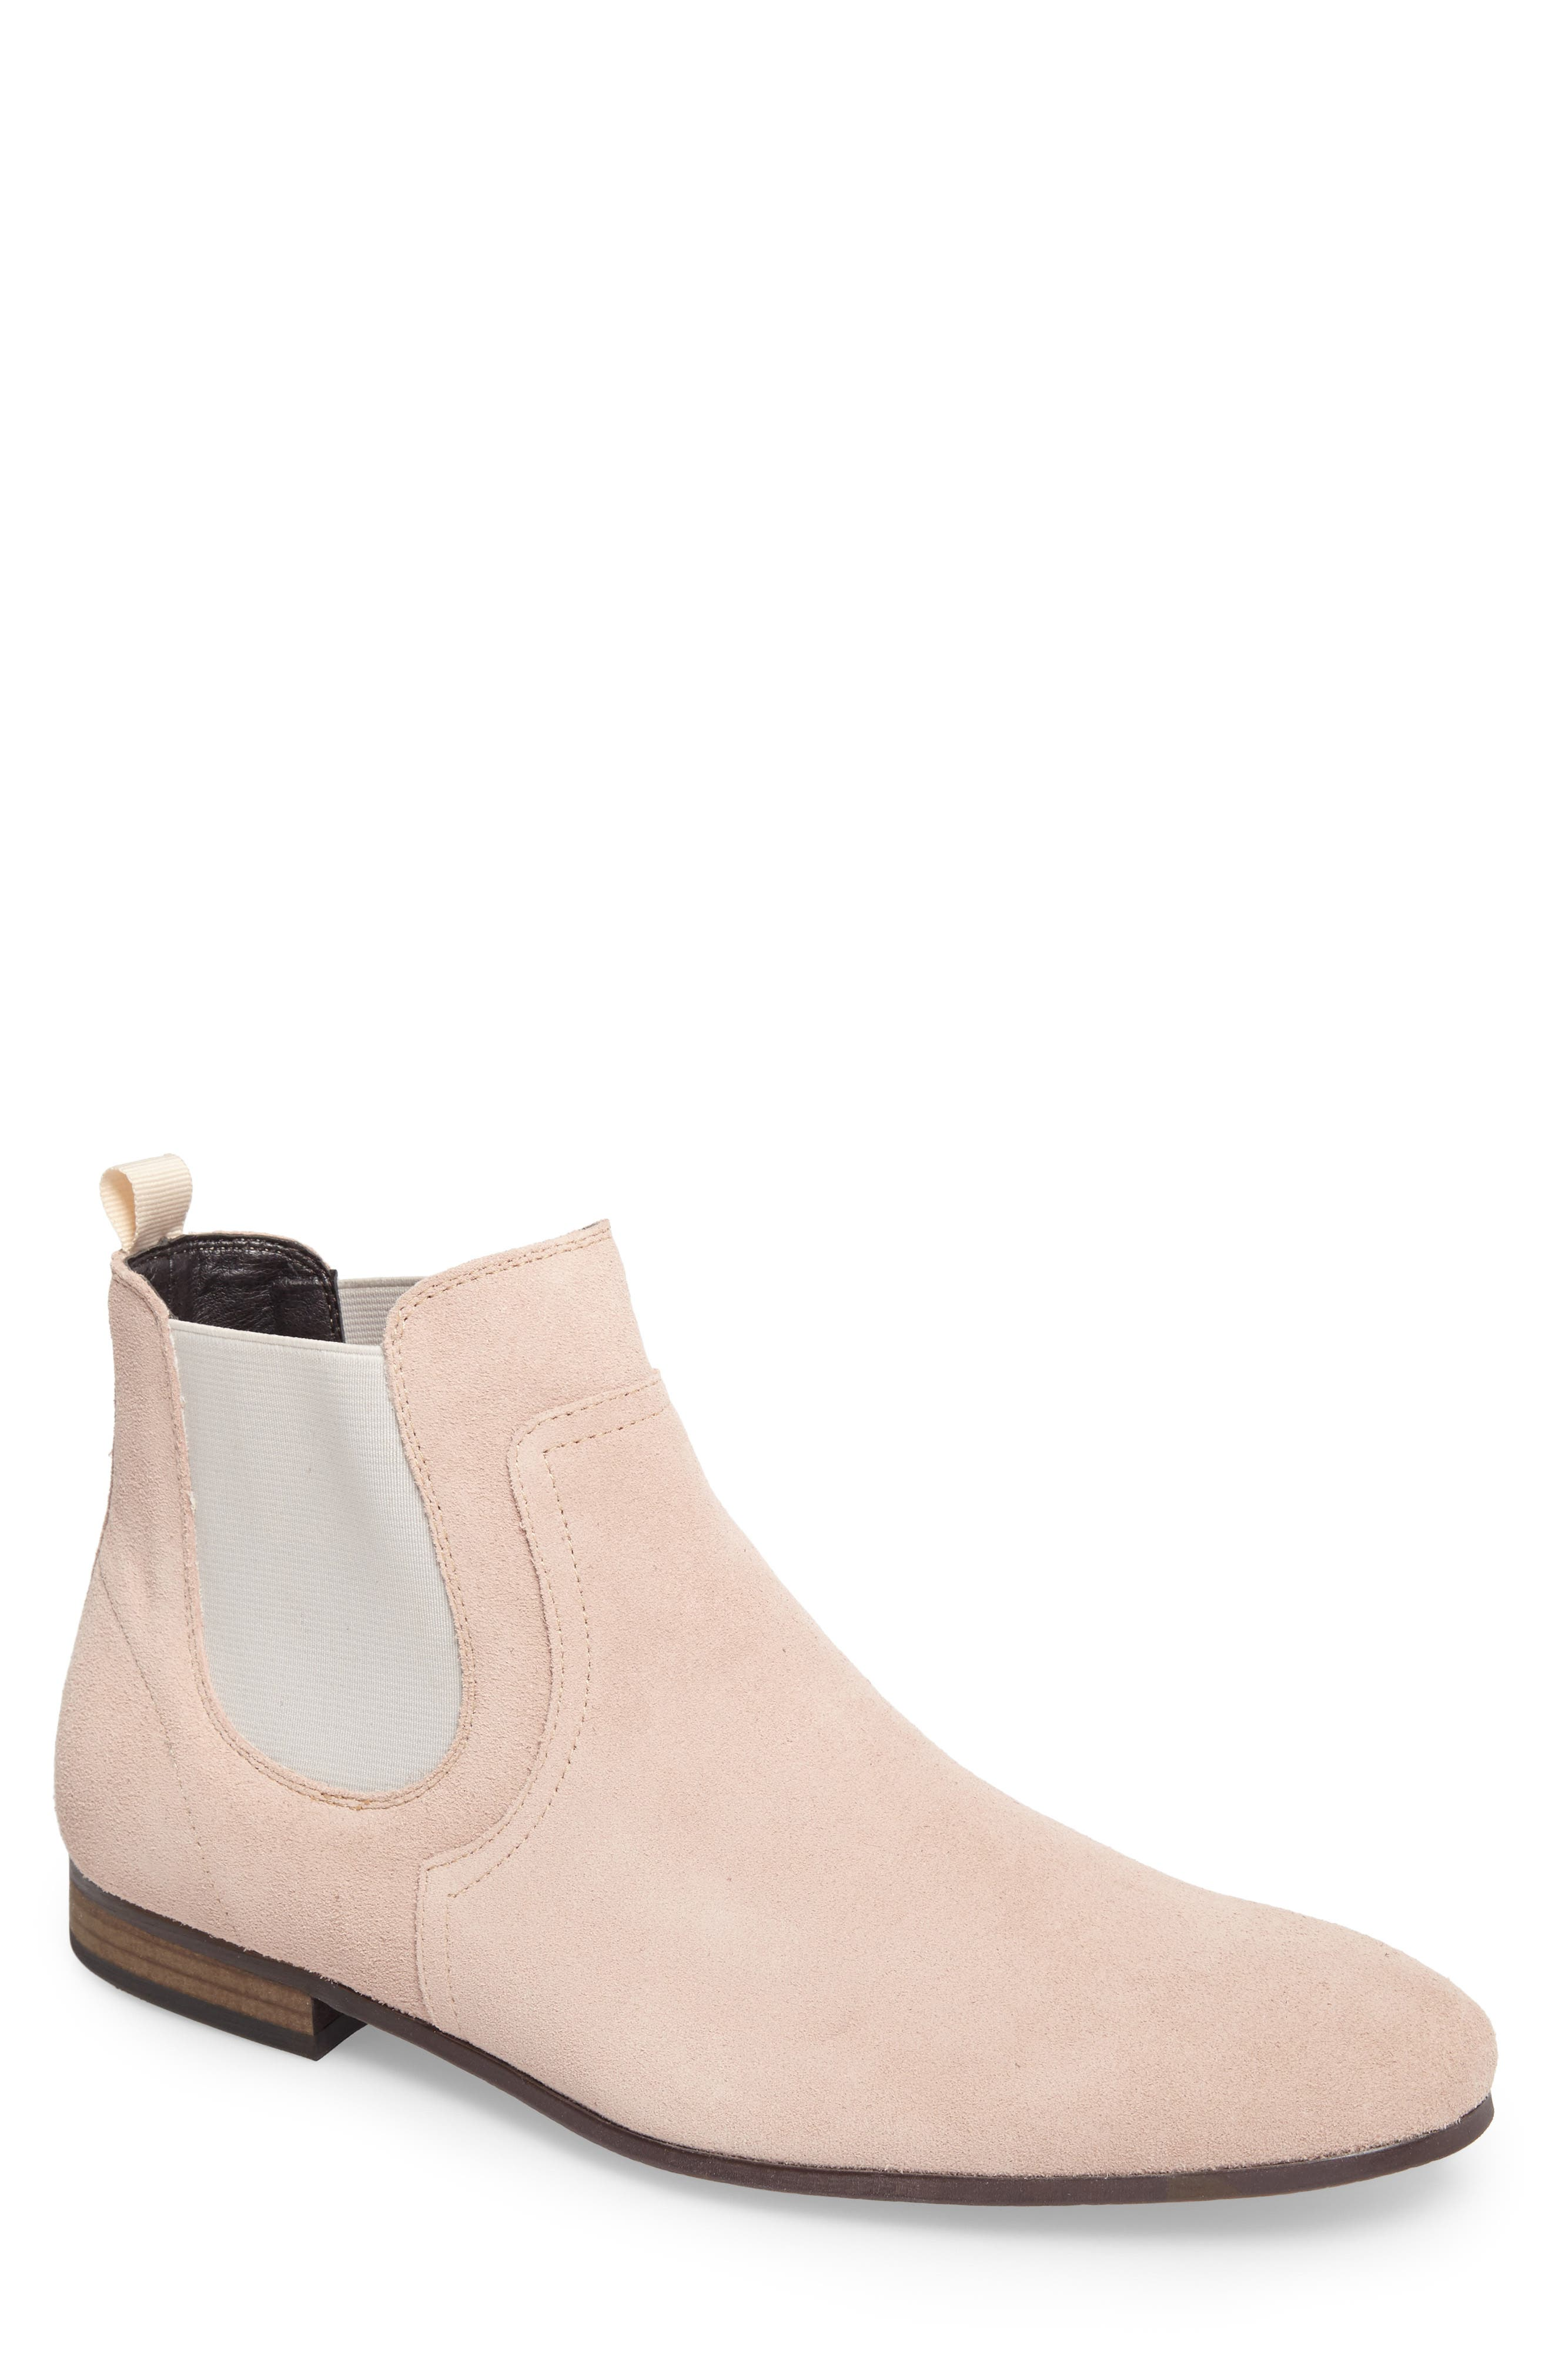 Brysen Chelsea Boot,                             Alternate thumbnail 19, color,